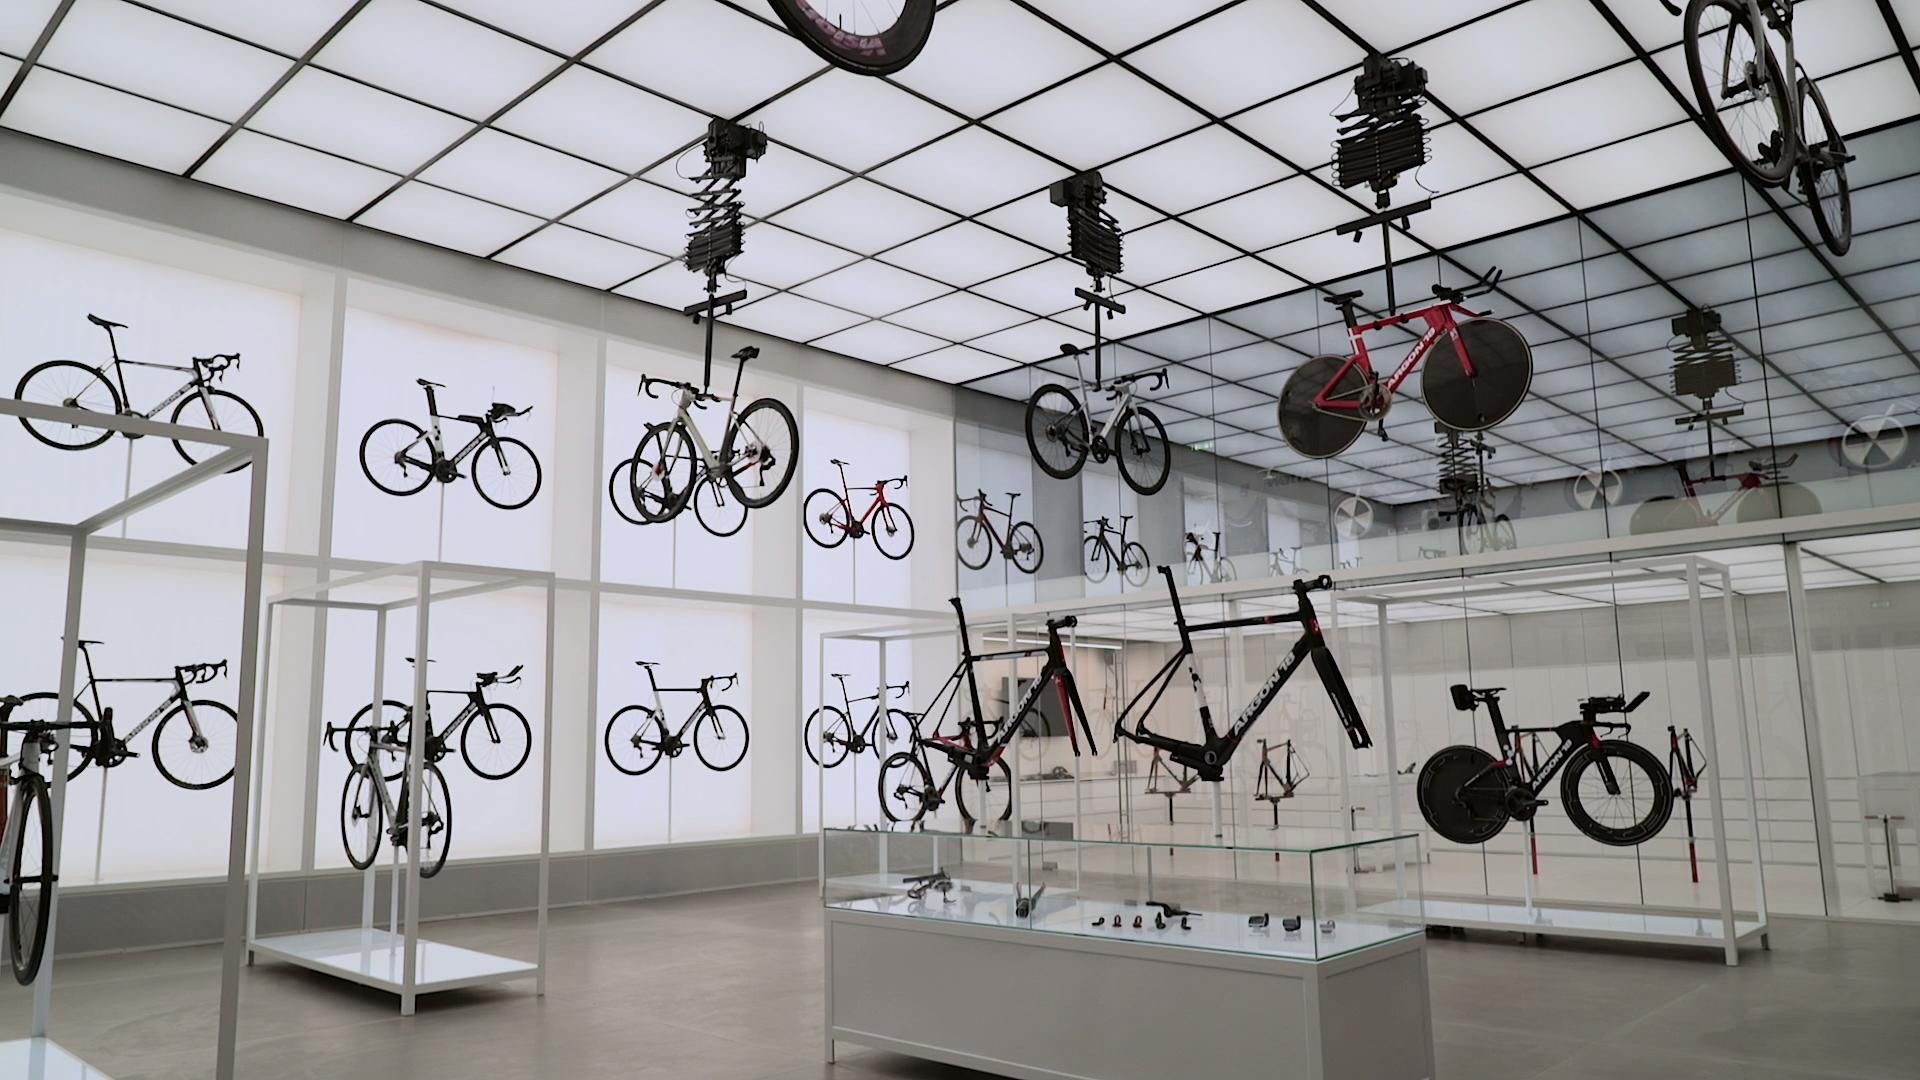 United Cycling LAB & Store designed by Johannes Torpe Studios - a glimpse to the future of retail.  #retaildesign #retailstore #physicalretail #retailexperience argon18 #carbonfibrebicycle #johannestorpestudios #futureofretail